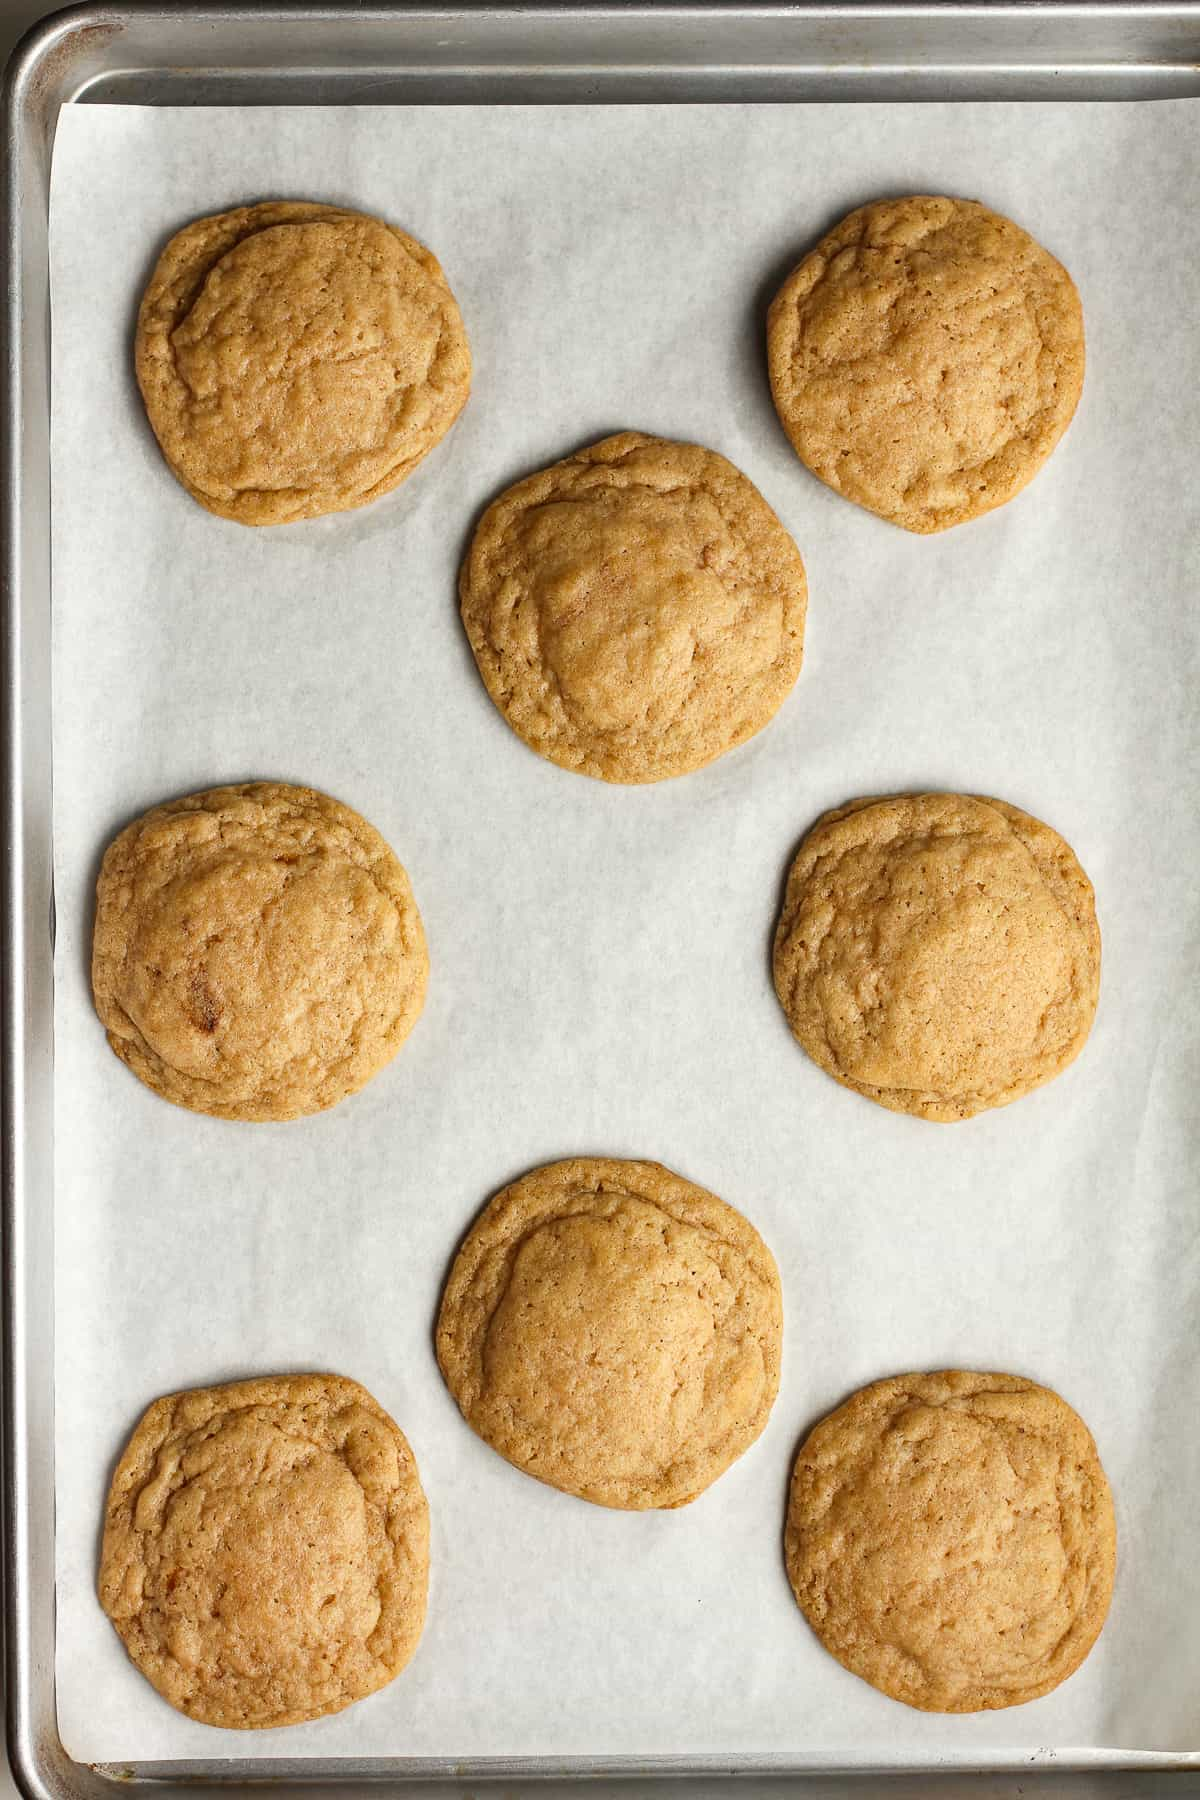 A pan of just baked cookies.